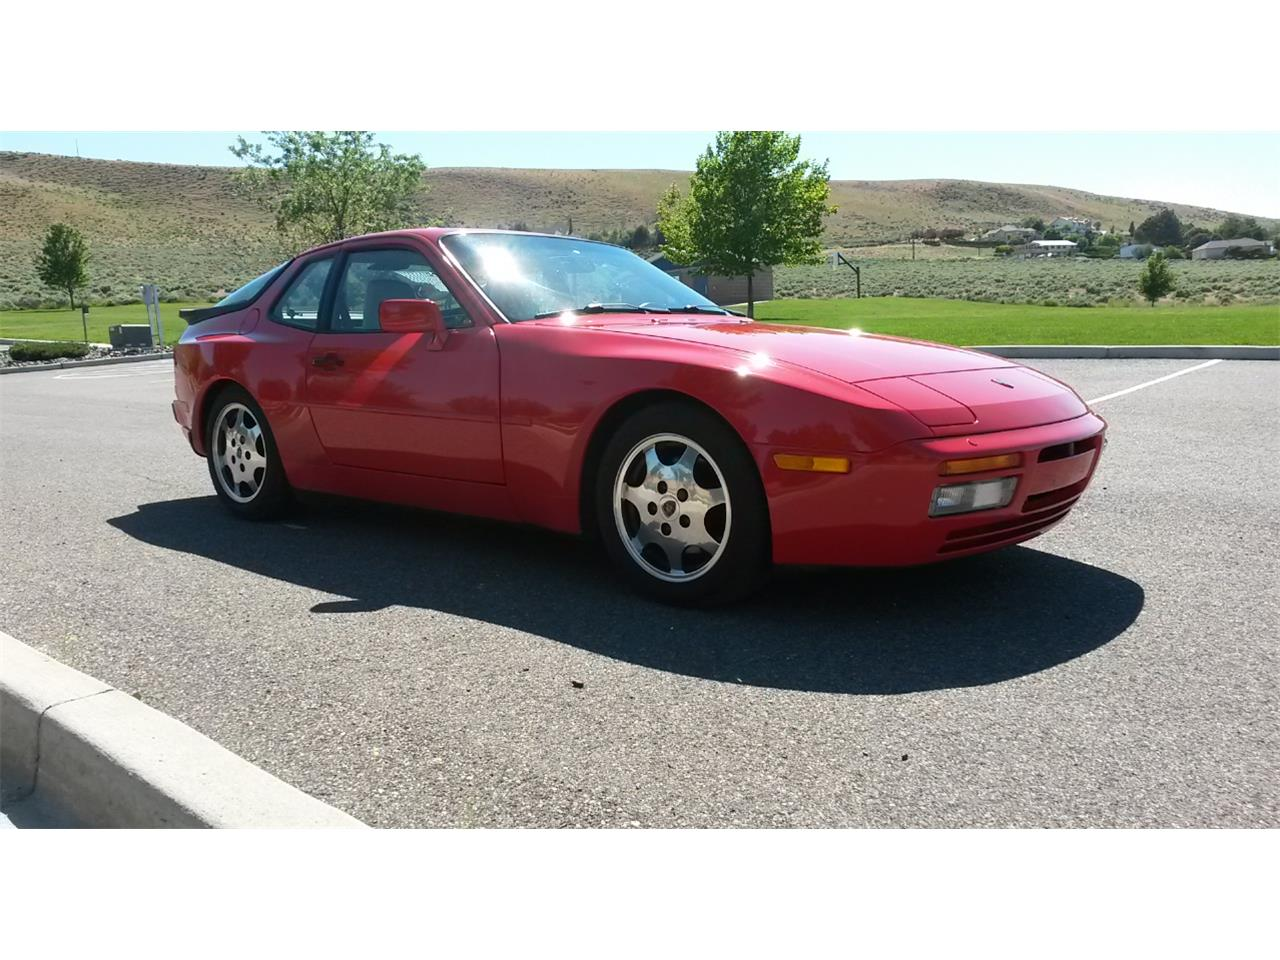 Large Picture of '89 944S2 located in Washington - $25,000.00 Offered by a Private Seller - L7PM